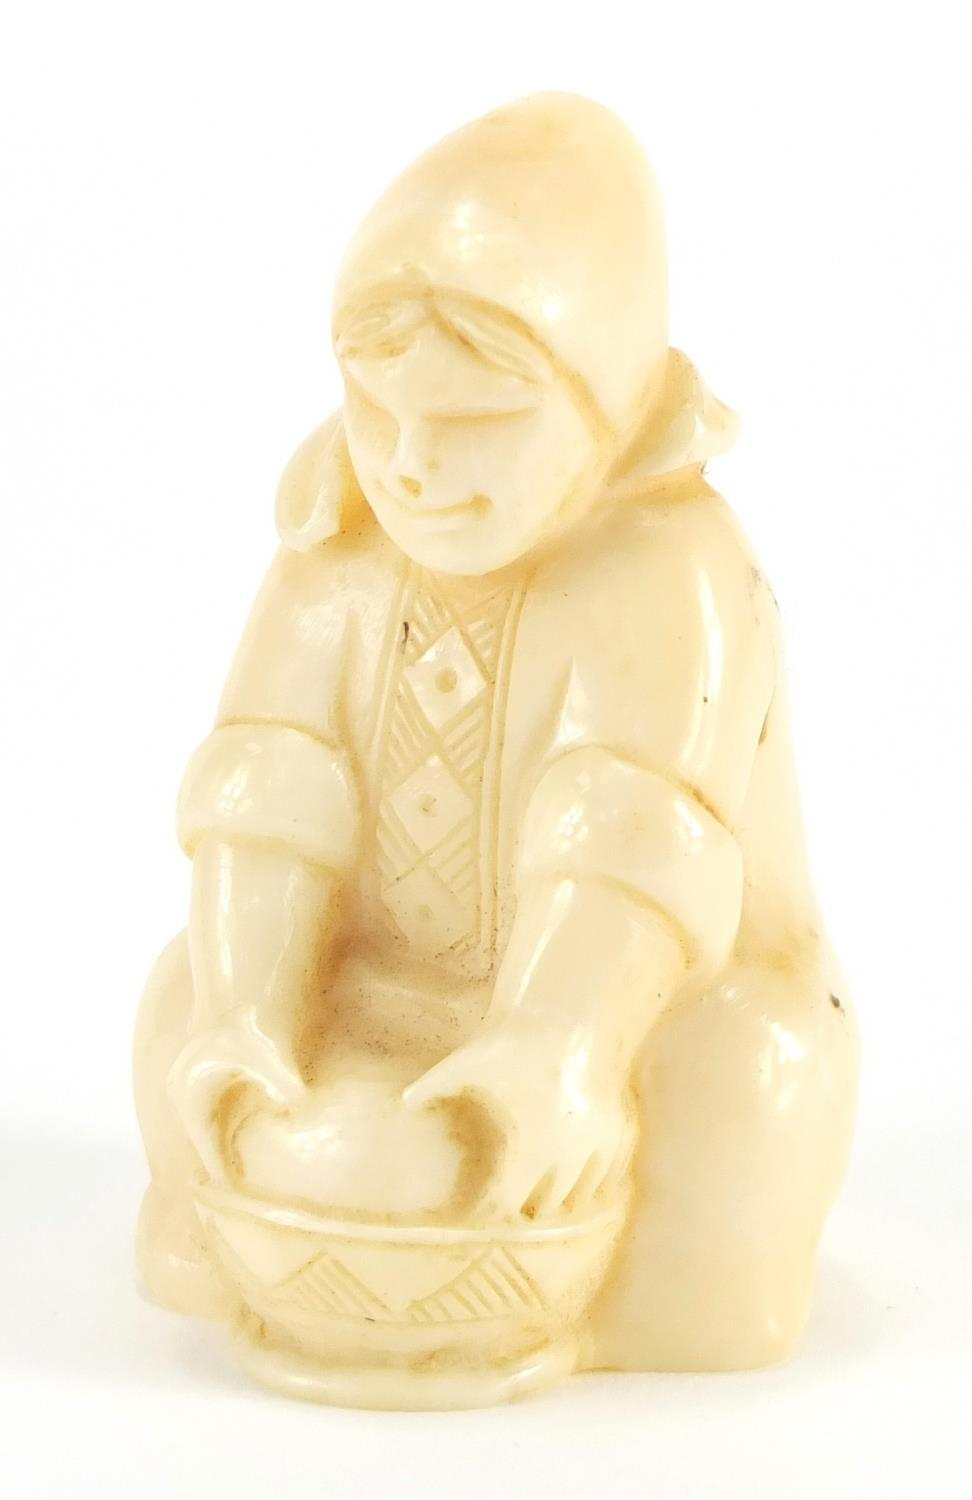 Lot 55 - Dieppe carved ivory figure of a young girl washing, incised numbers to the base, 6.5cm high :For